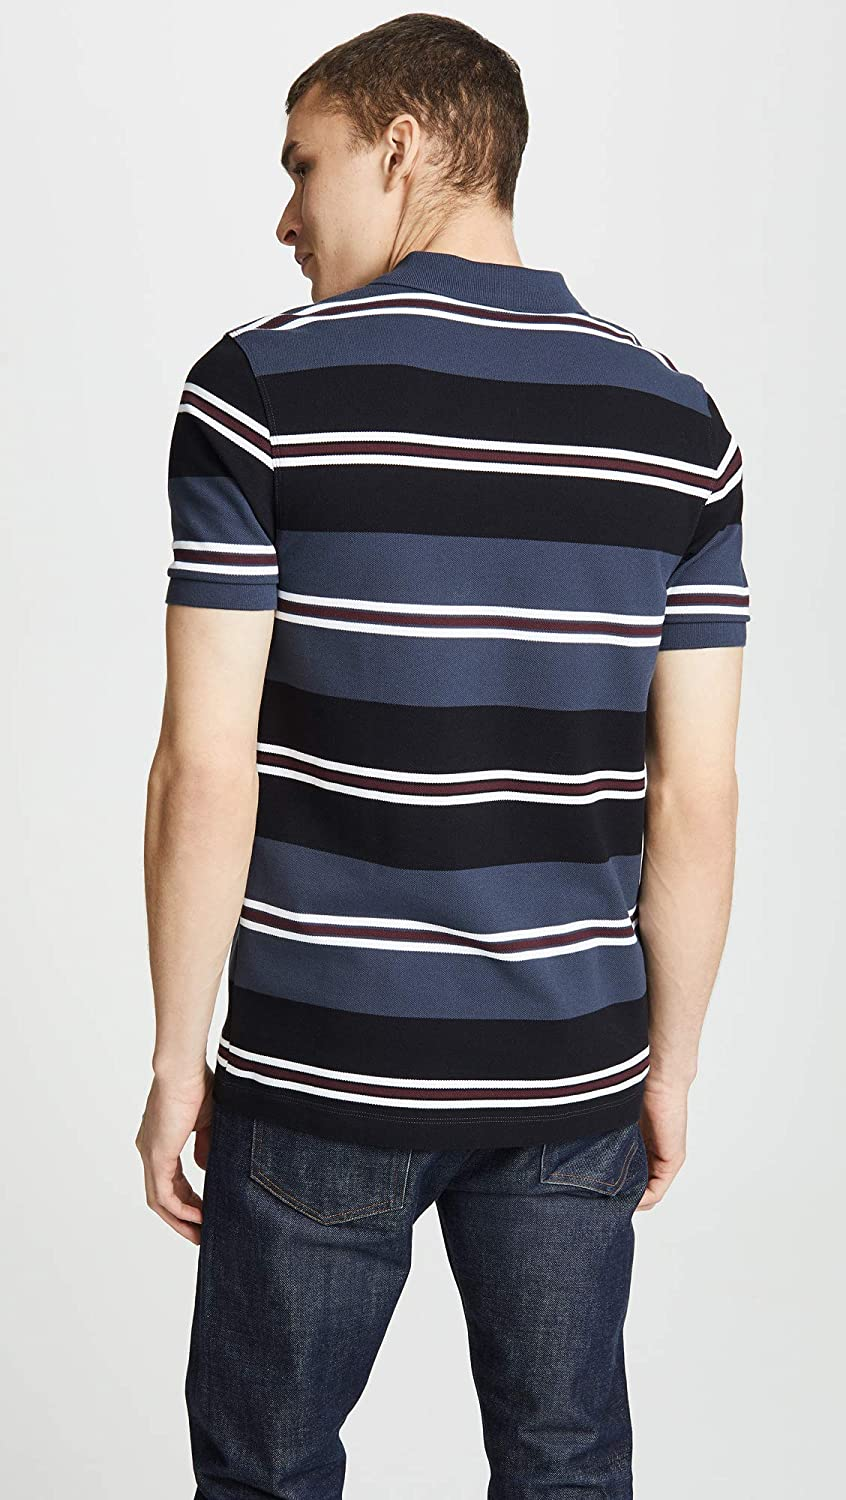 928aff284 Fred Perry Men s Contrast Stripe Polo Shirt M5507 102 Black  Amazon.co.uk   Clothing